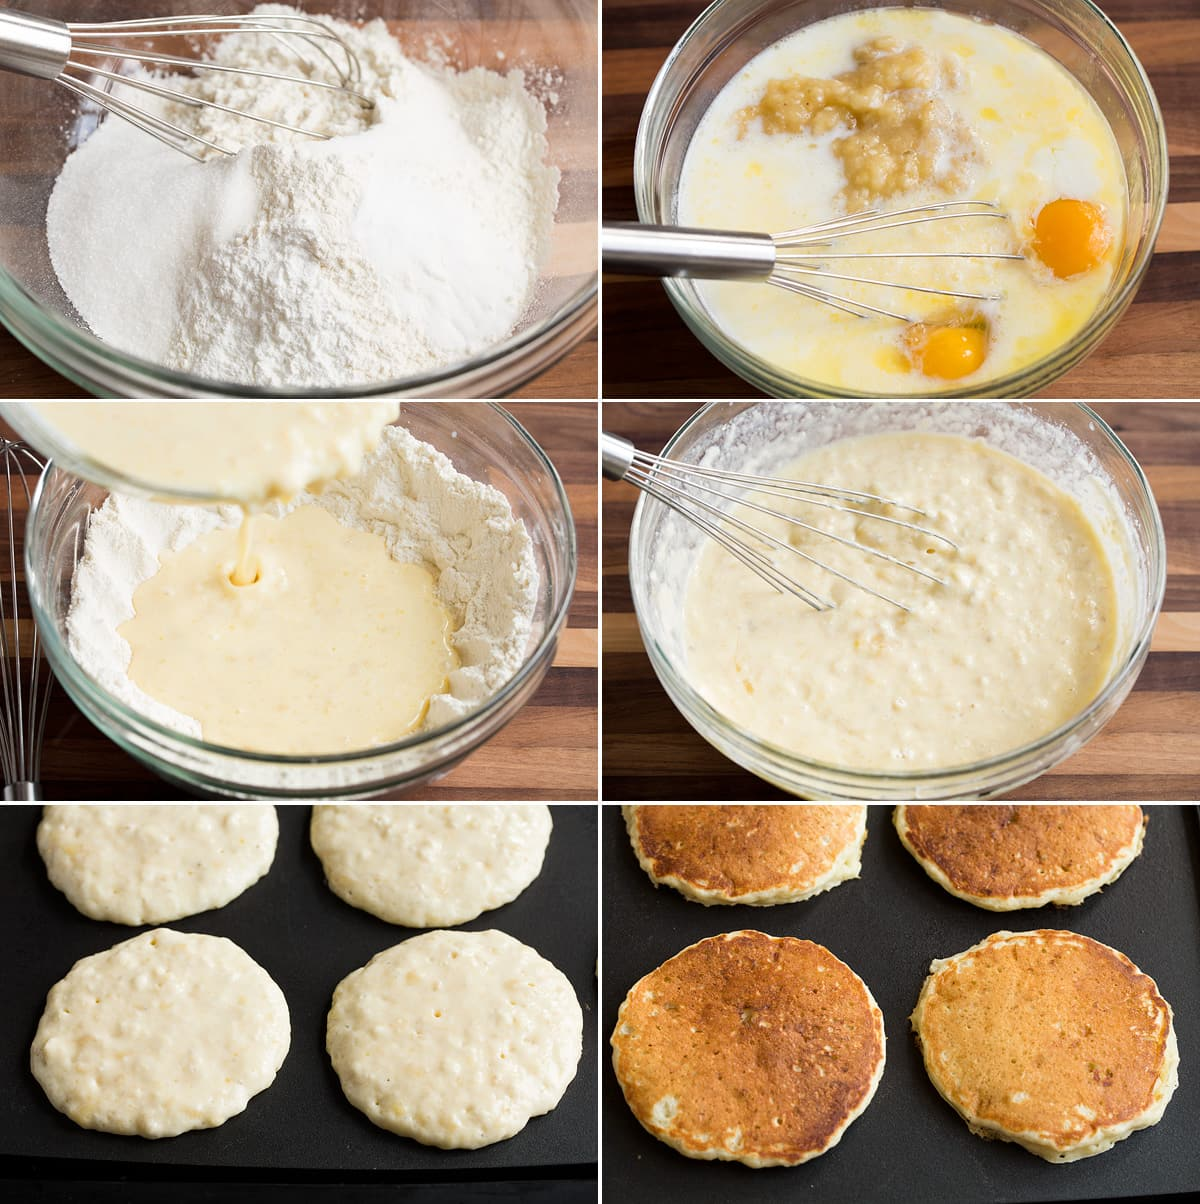 Collage of 6 images showing the steps of preparing banana pancake batter and cooking pancakes on the griddle.